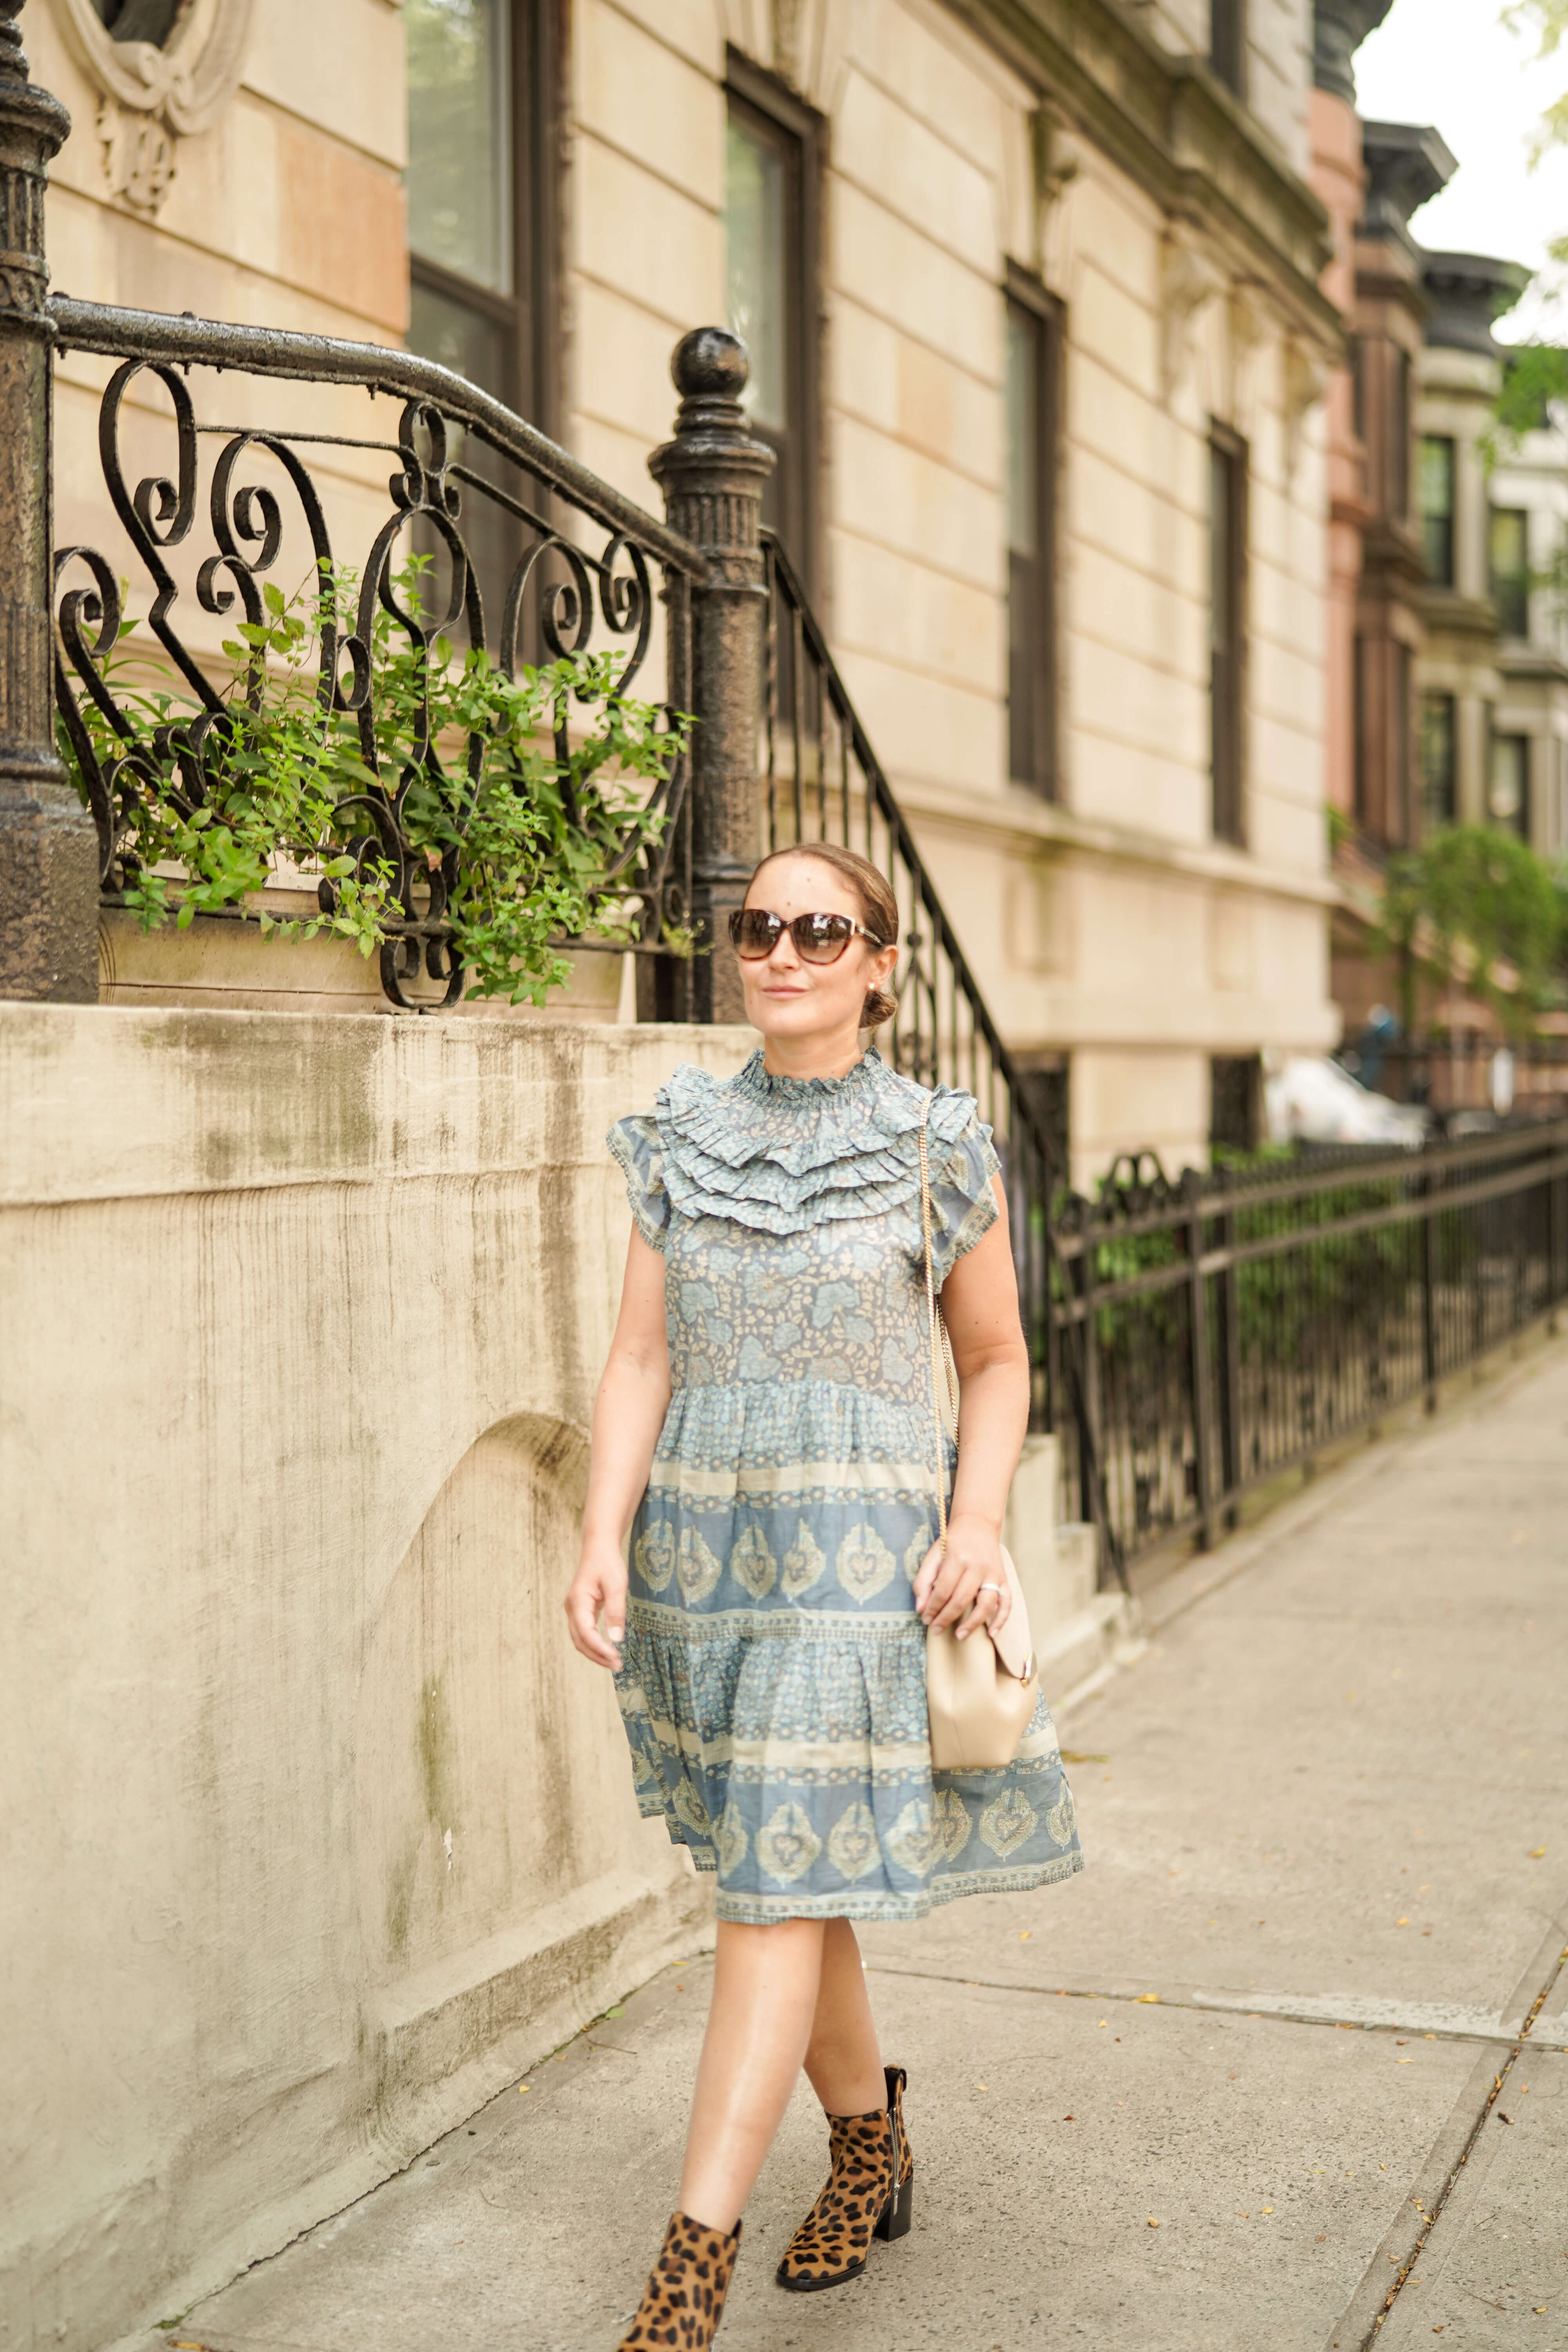 Sea Dress Phillip Lim Booties Polene Bag Outfit by Modnitsa Styling